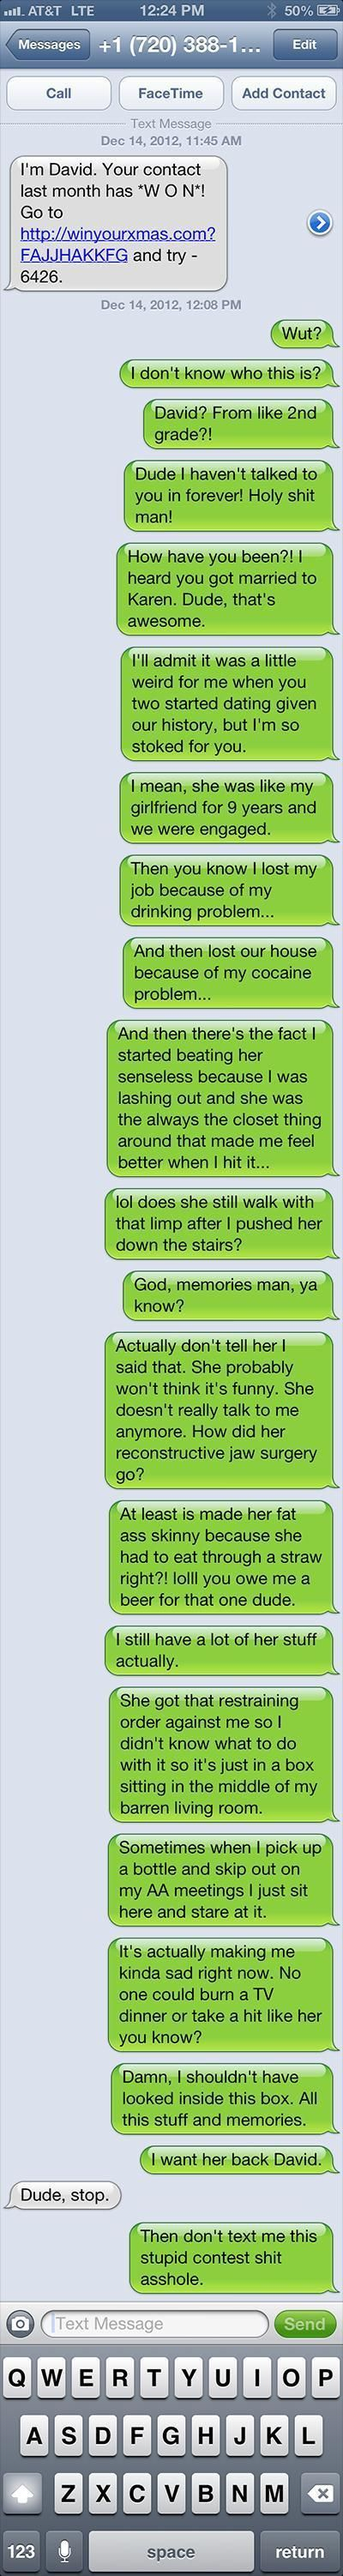 Epic!!!! So funny.: Texts, Giggle, Funny Stuff, Funnies, So Funny